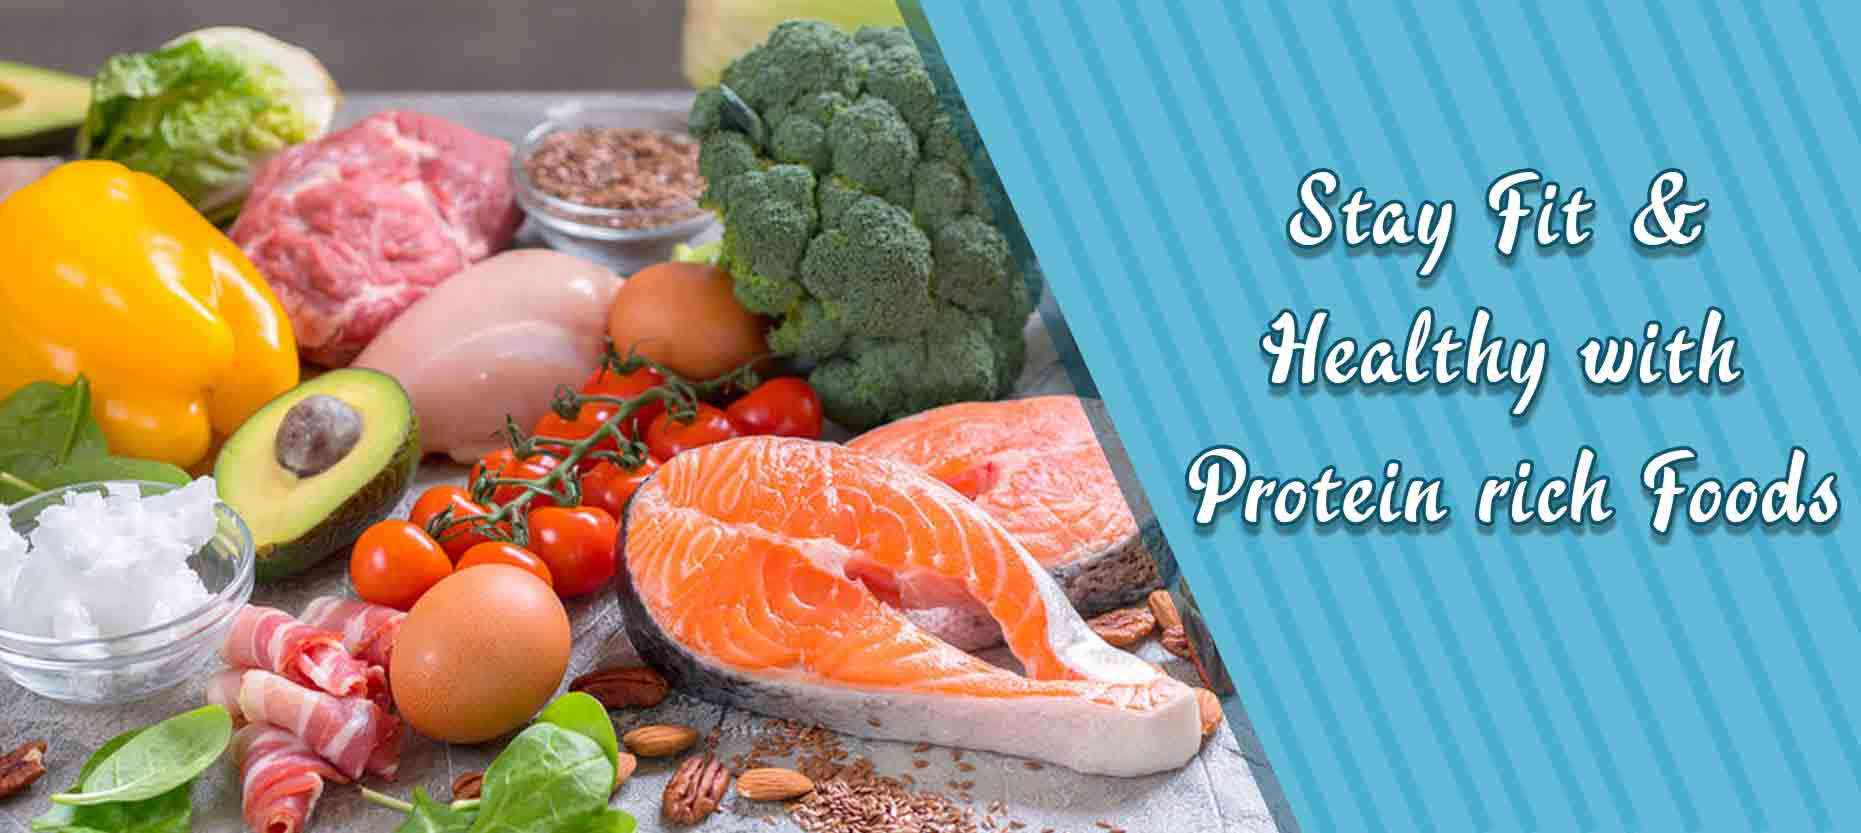 Stay Fit & Healthy with Protein Rich Foods